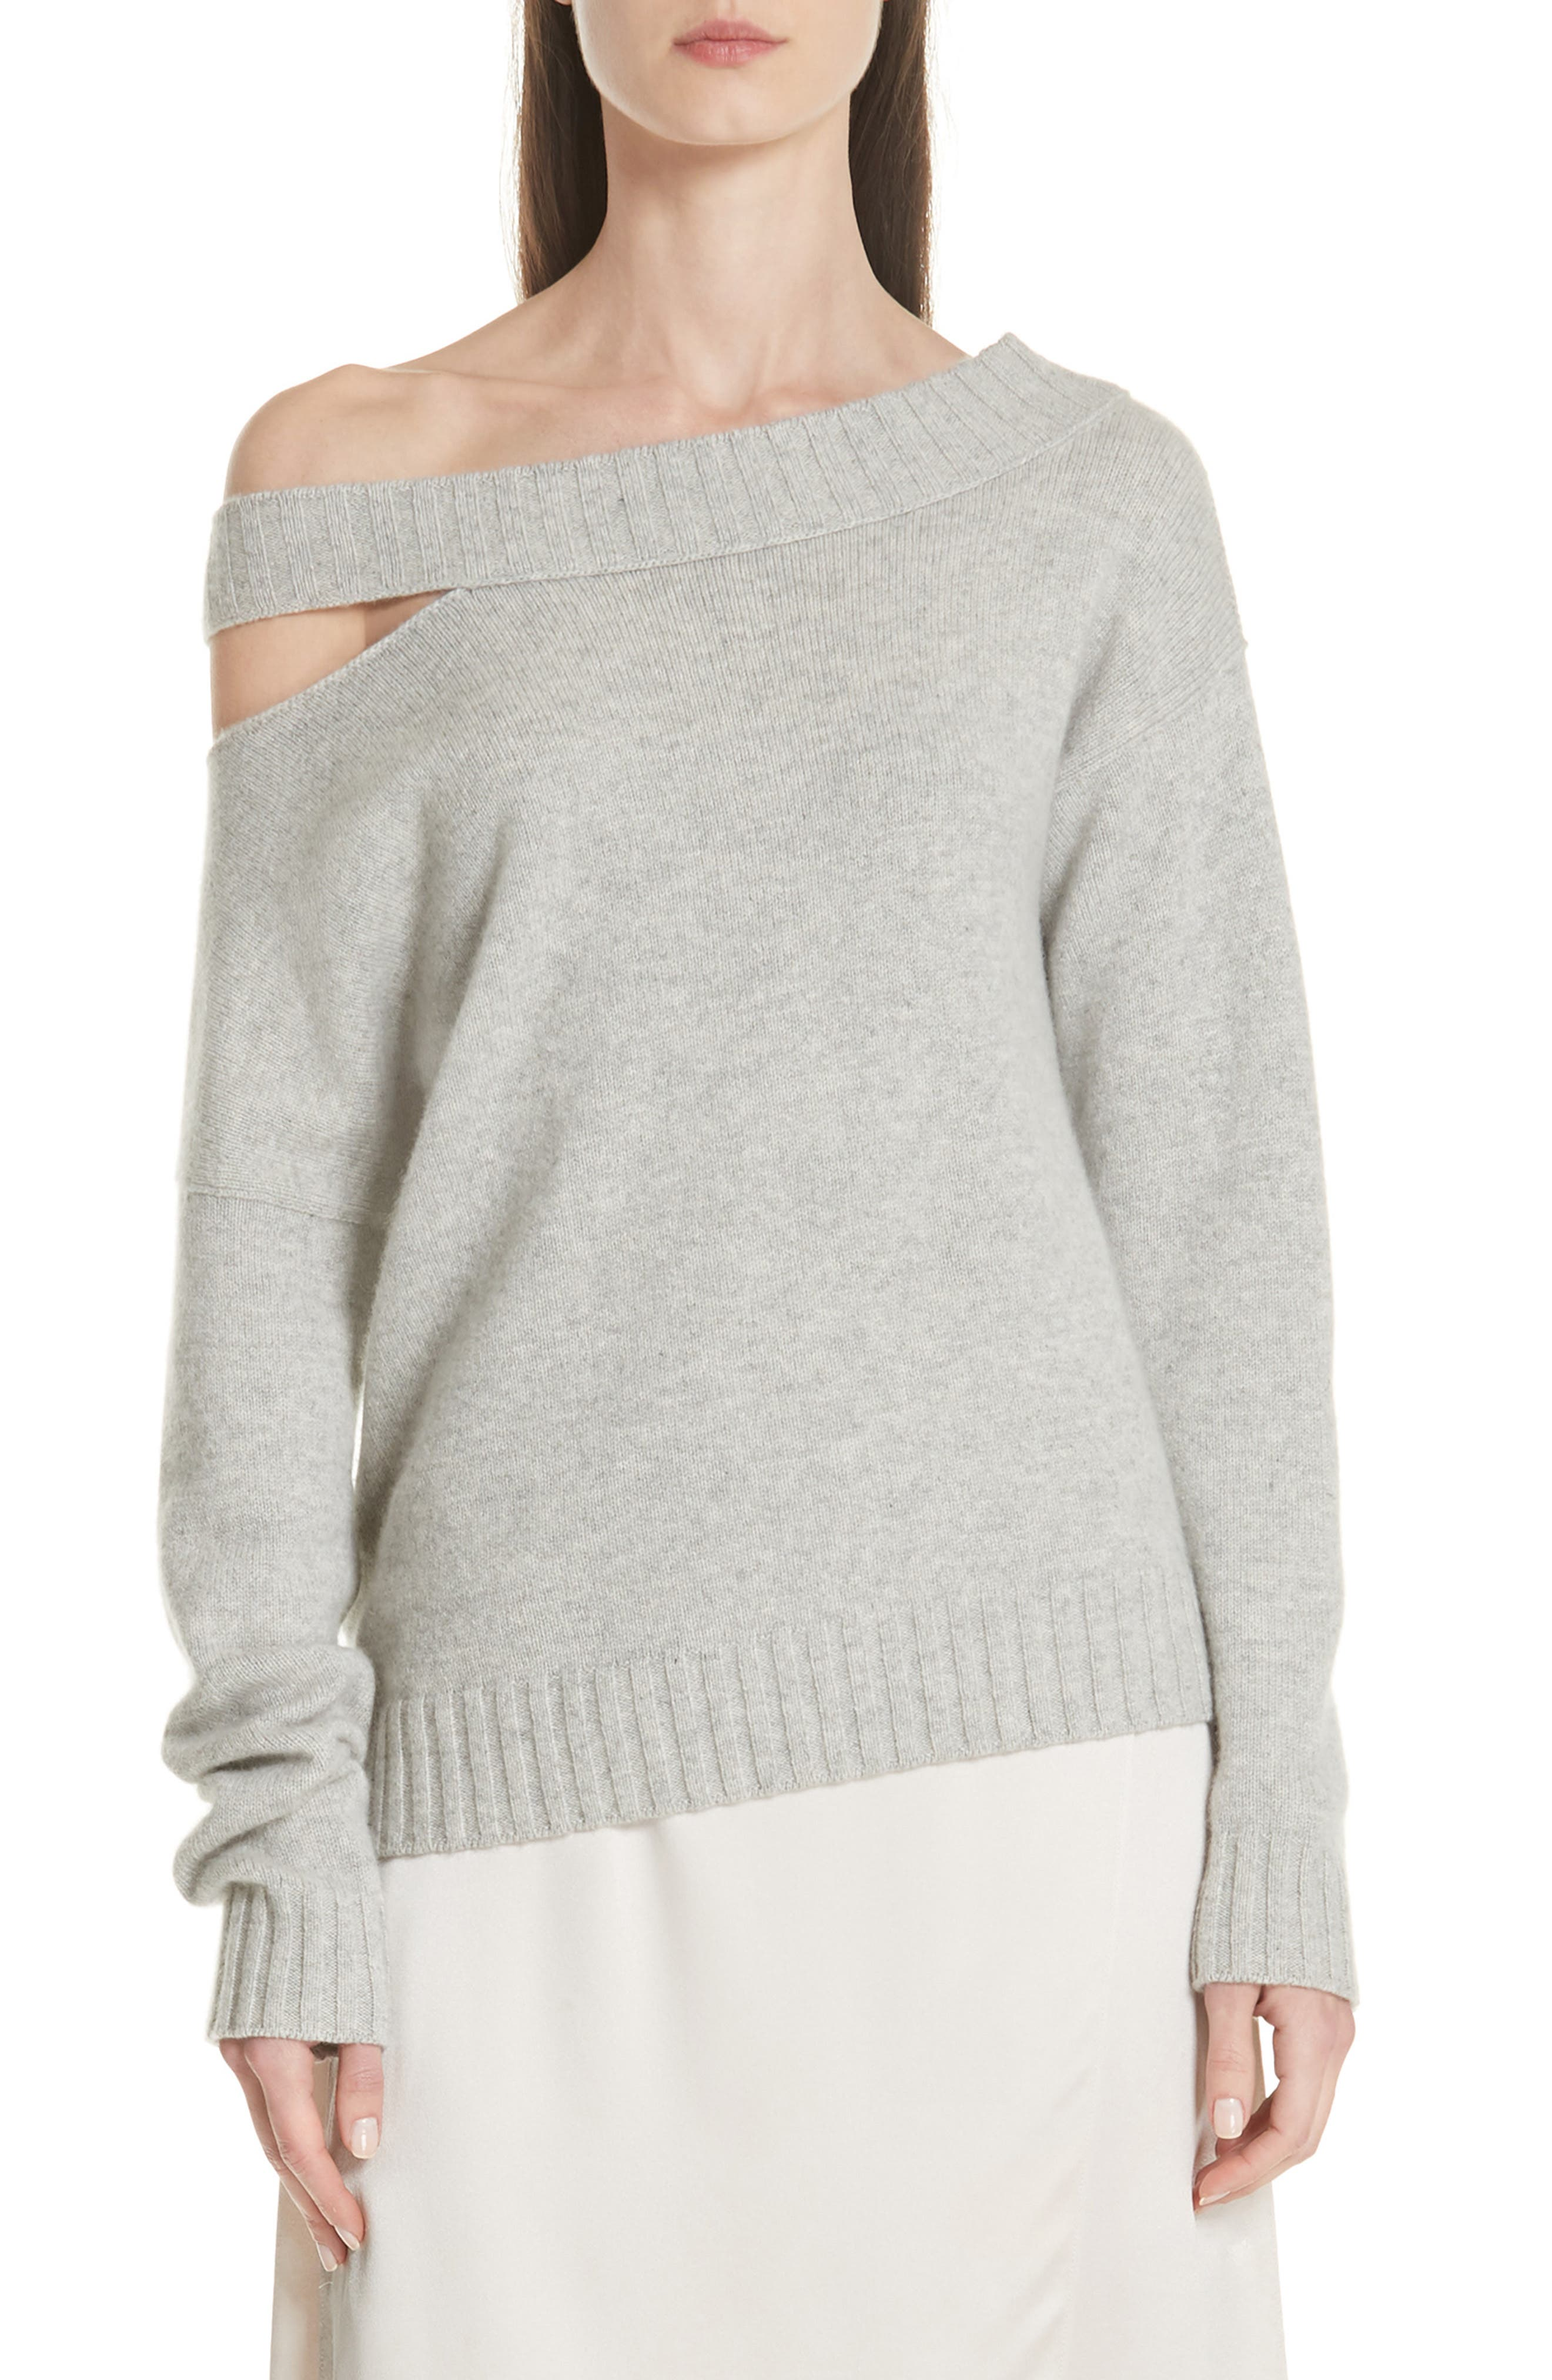 One Shoulder Slit Pullover Sweater,                             Main thumbnail 1, color,                             LIGHT HEATHER GREY